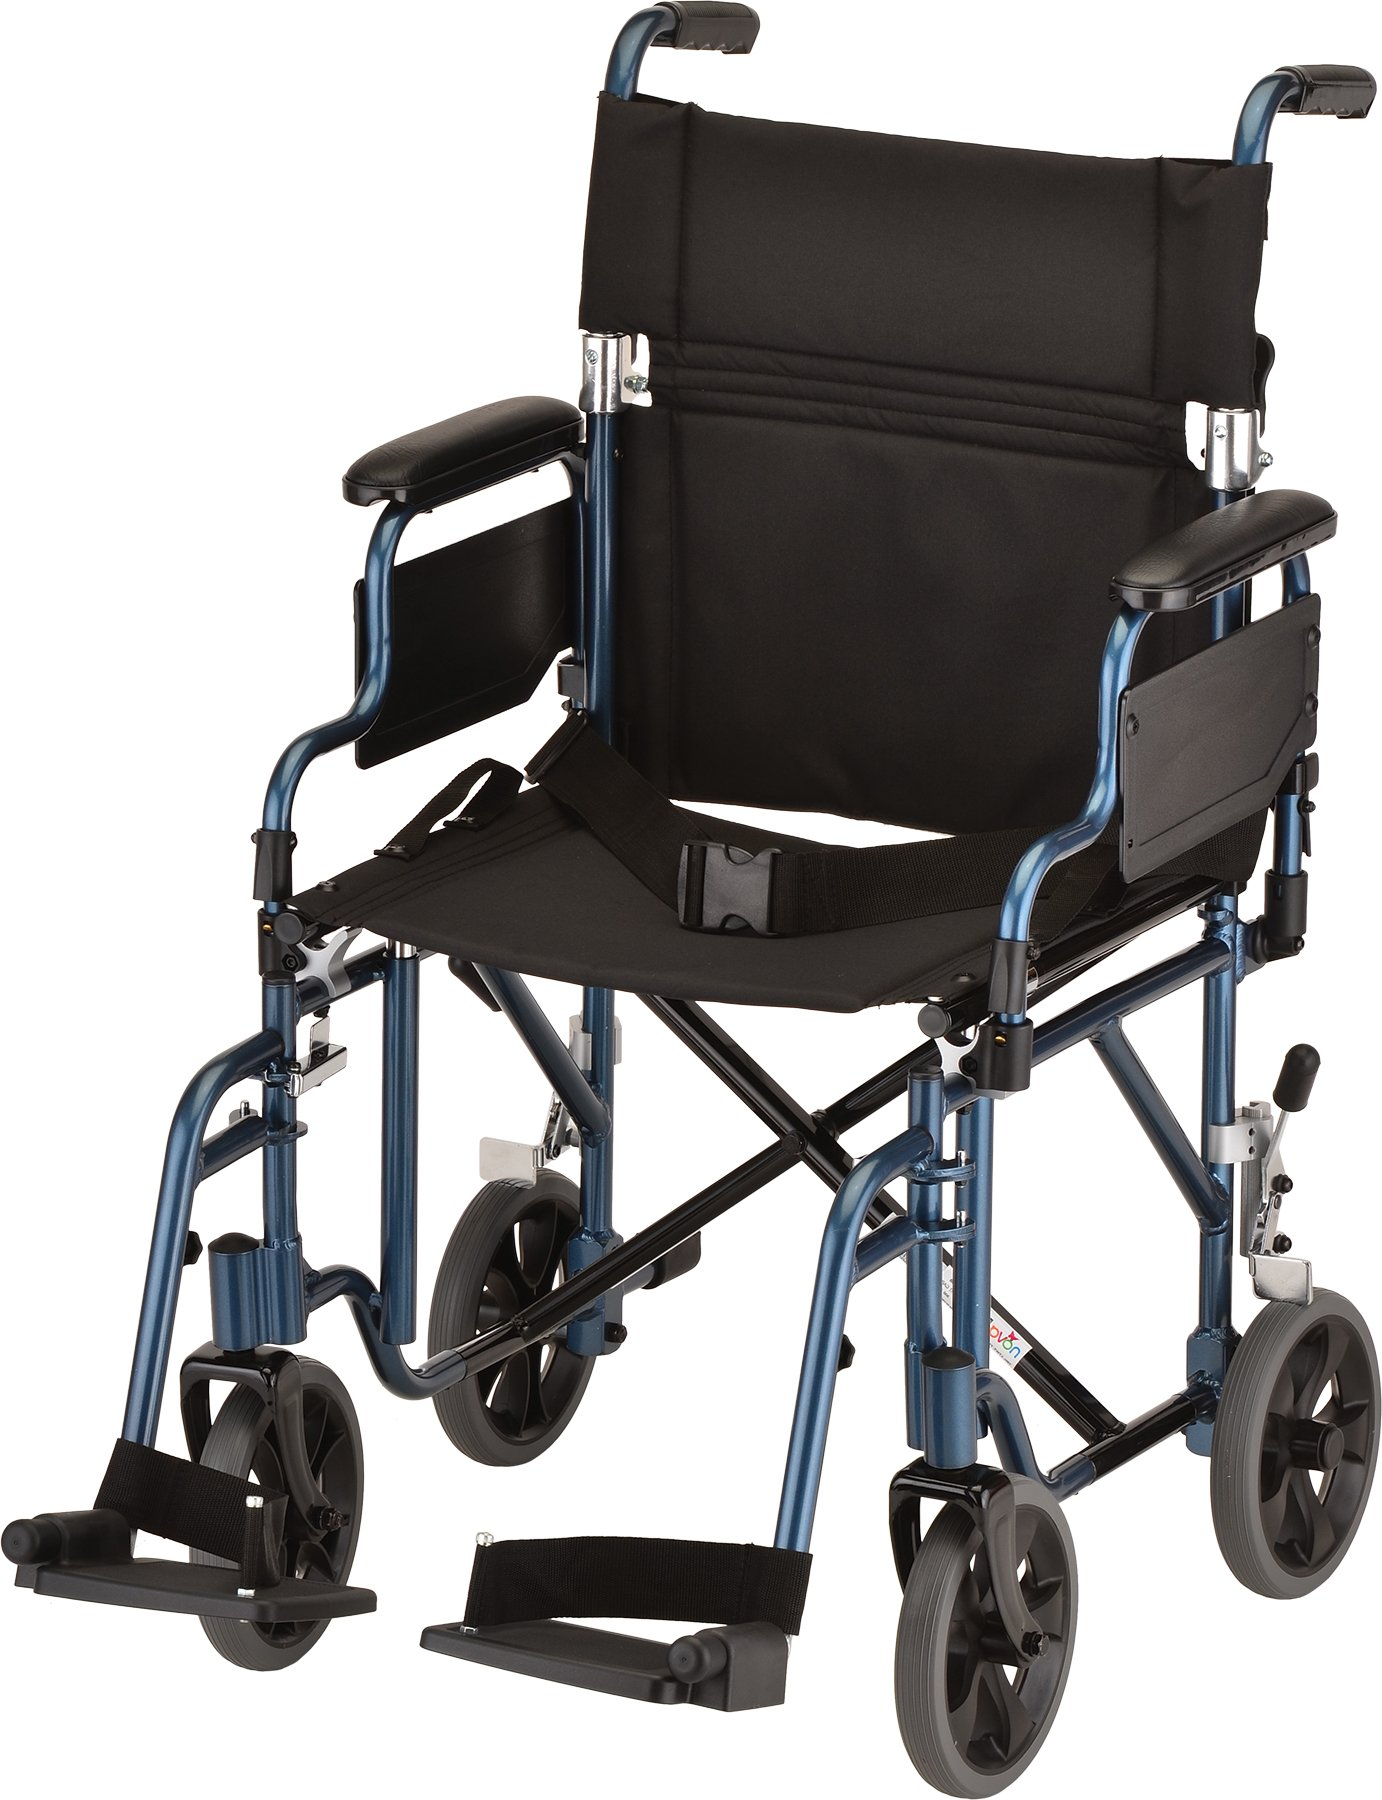 NOVA Medical Products 19'' Transport/Wheelchair with Detachable Arms, Blue